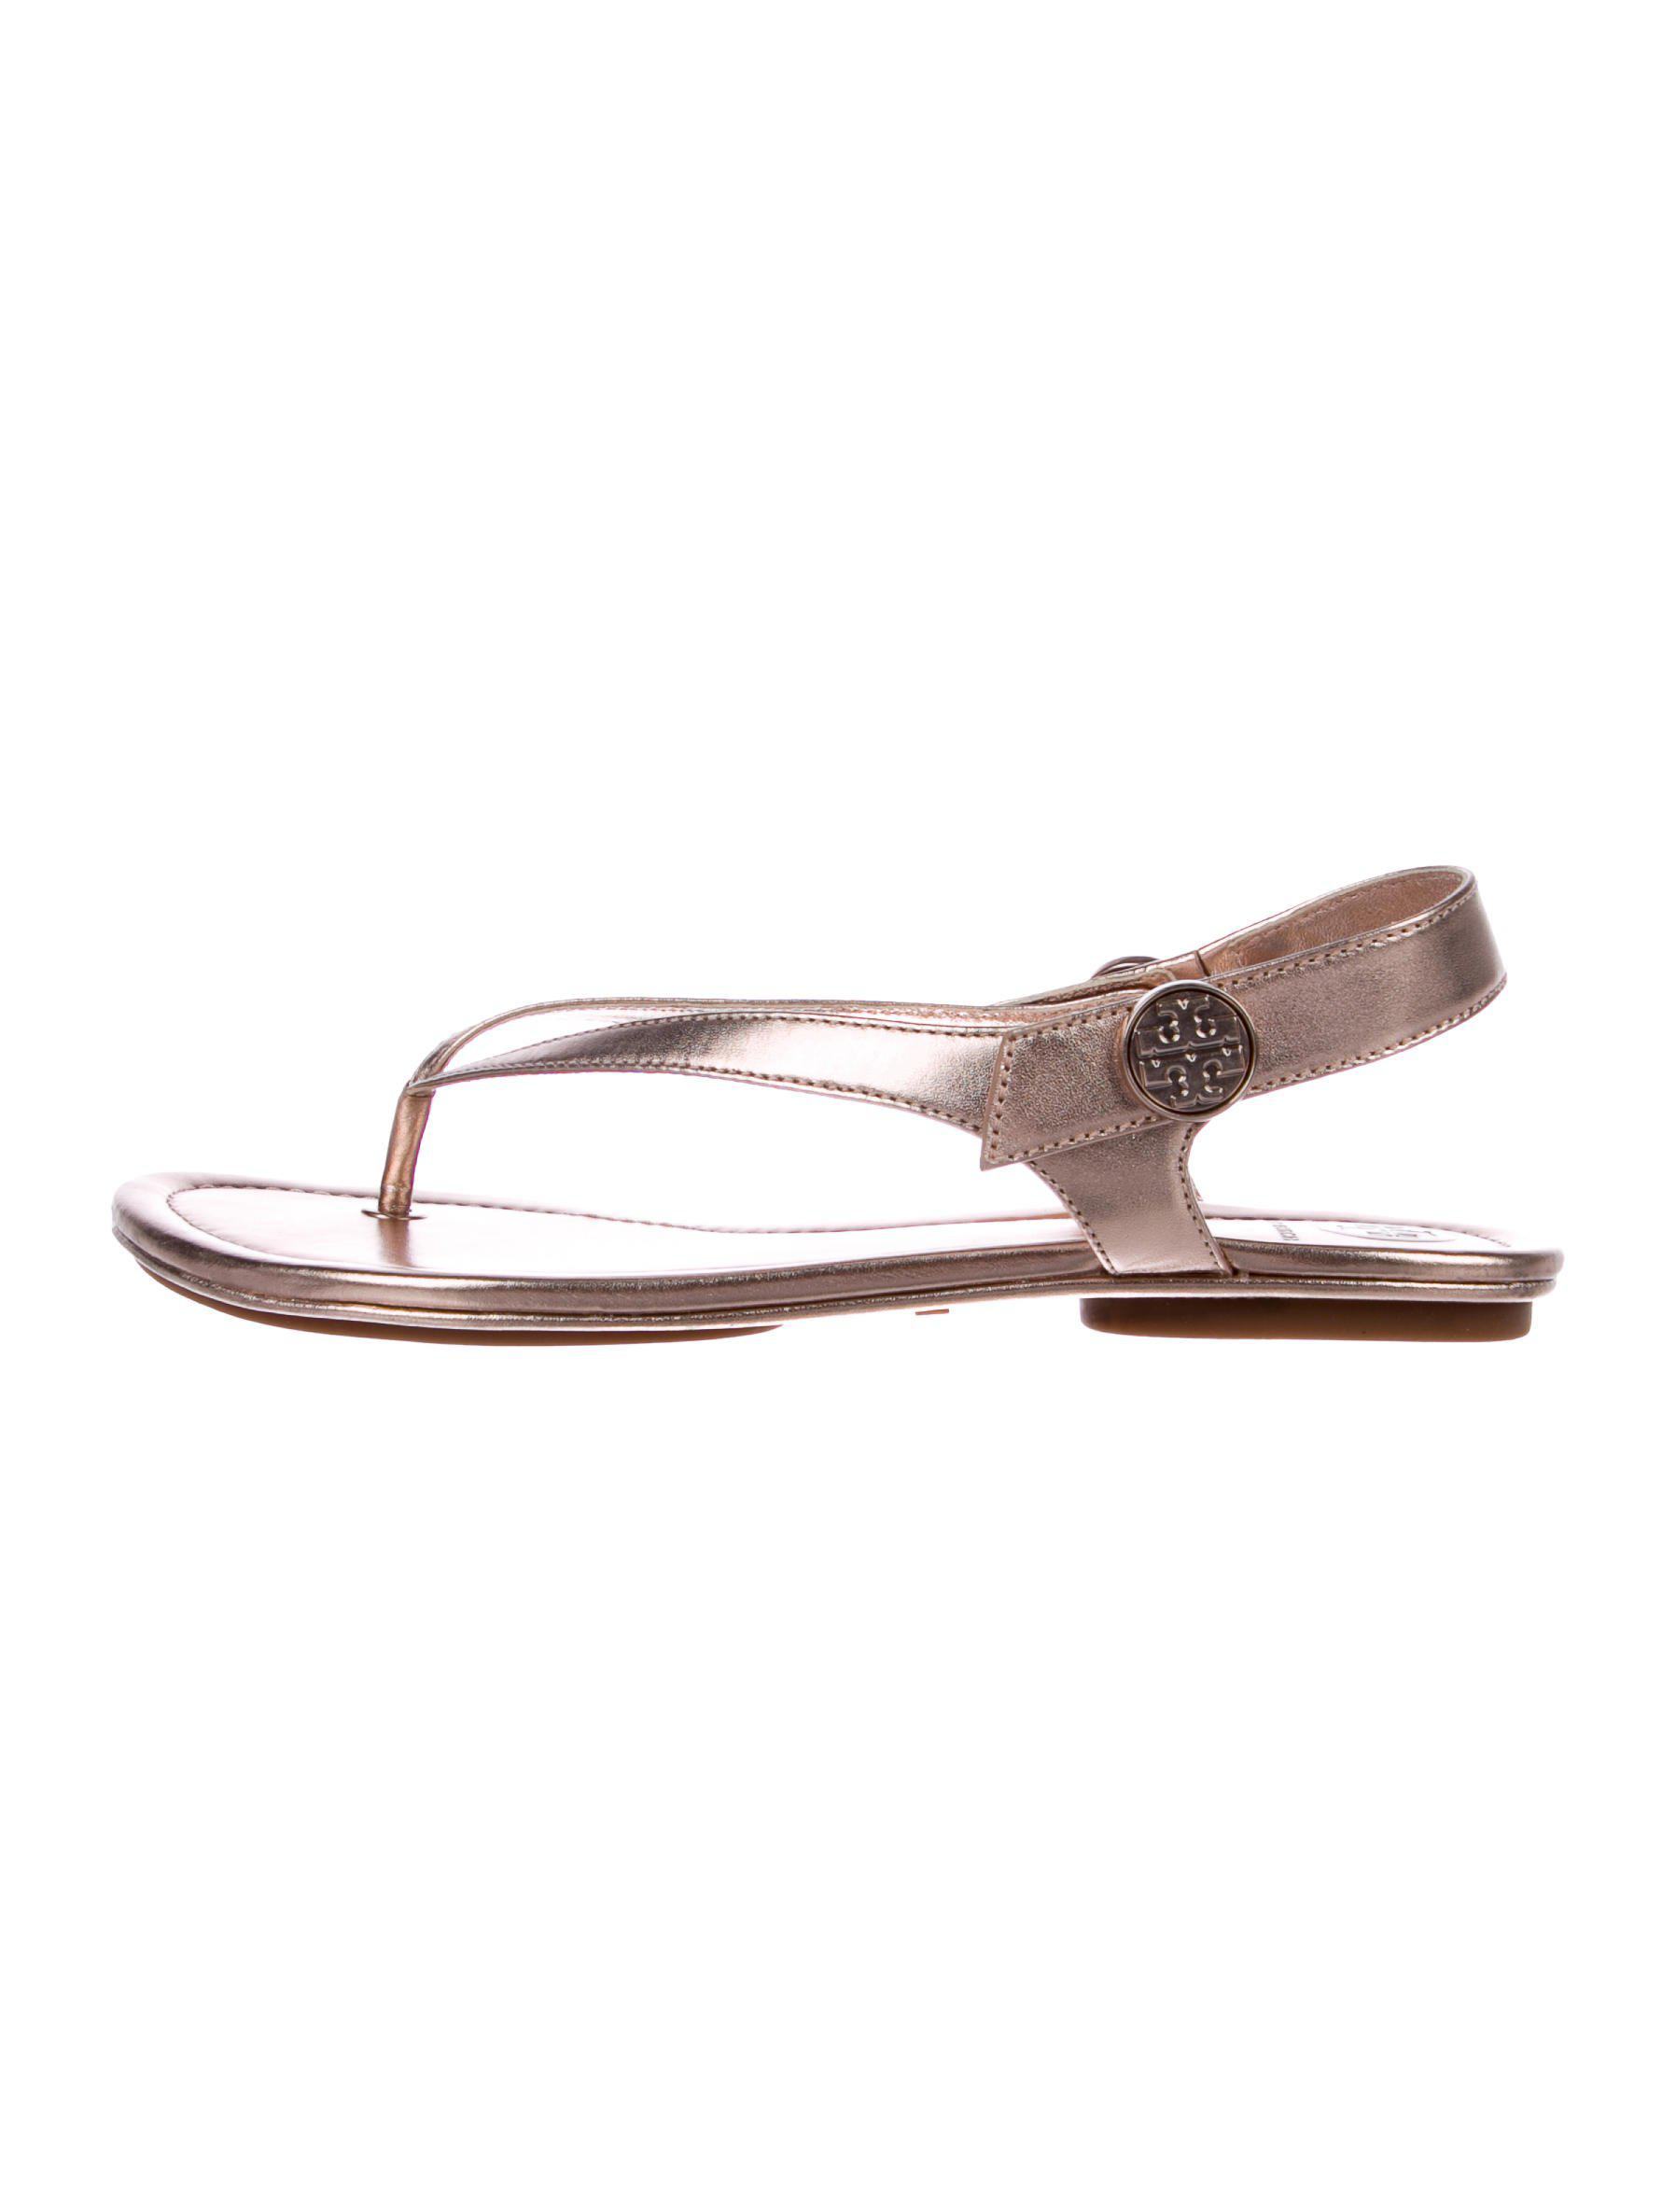 37852a001d18 Lyst - Tory Burch Leather Thong Sandals Rose in Metallic